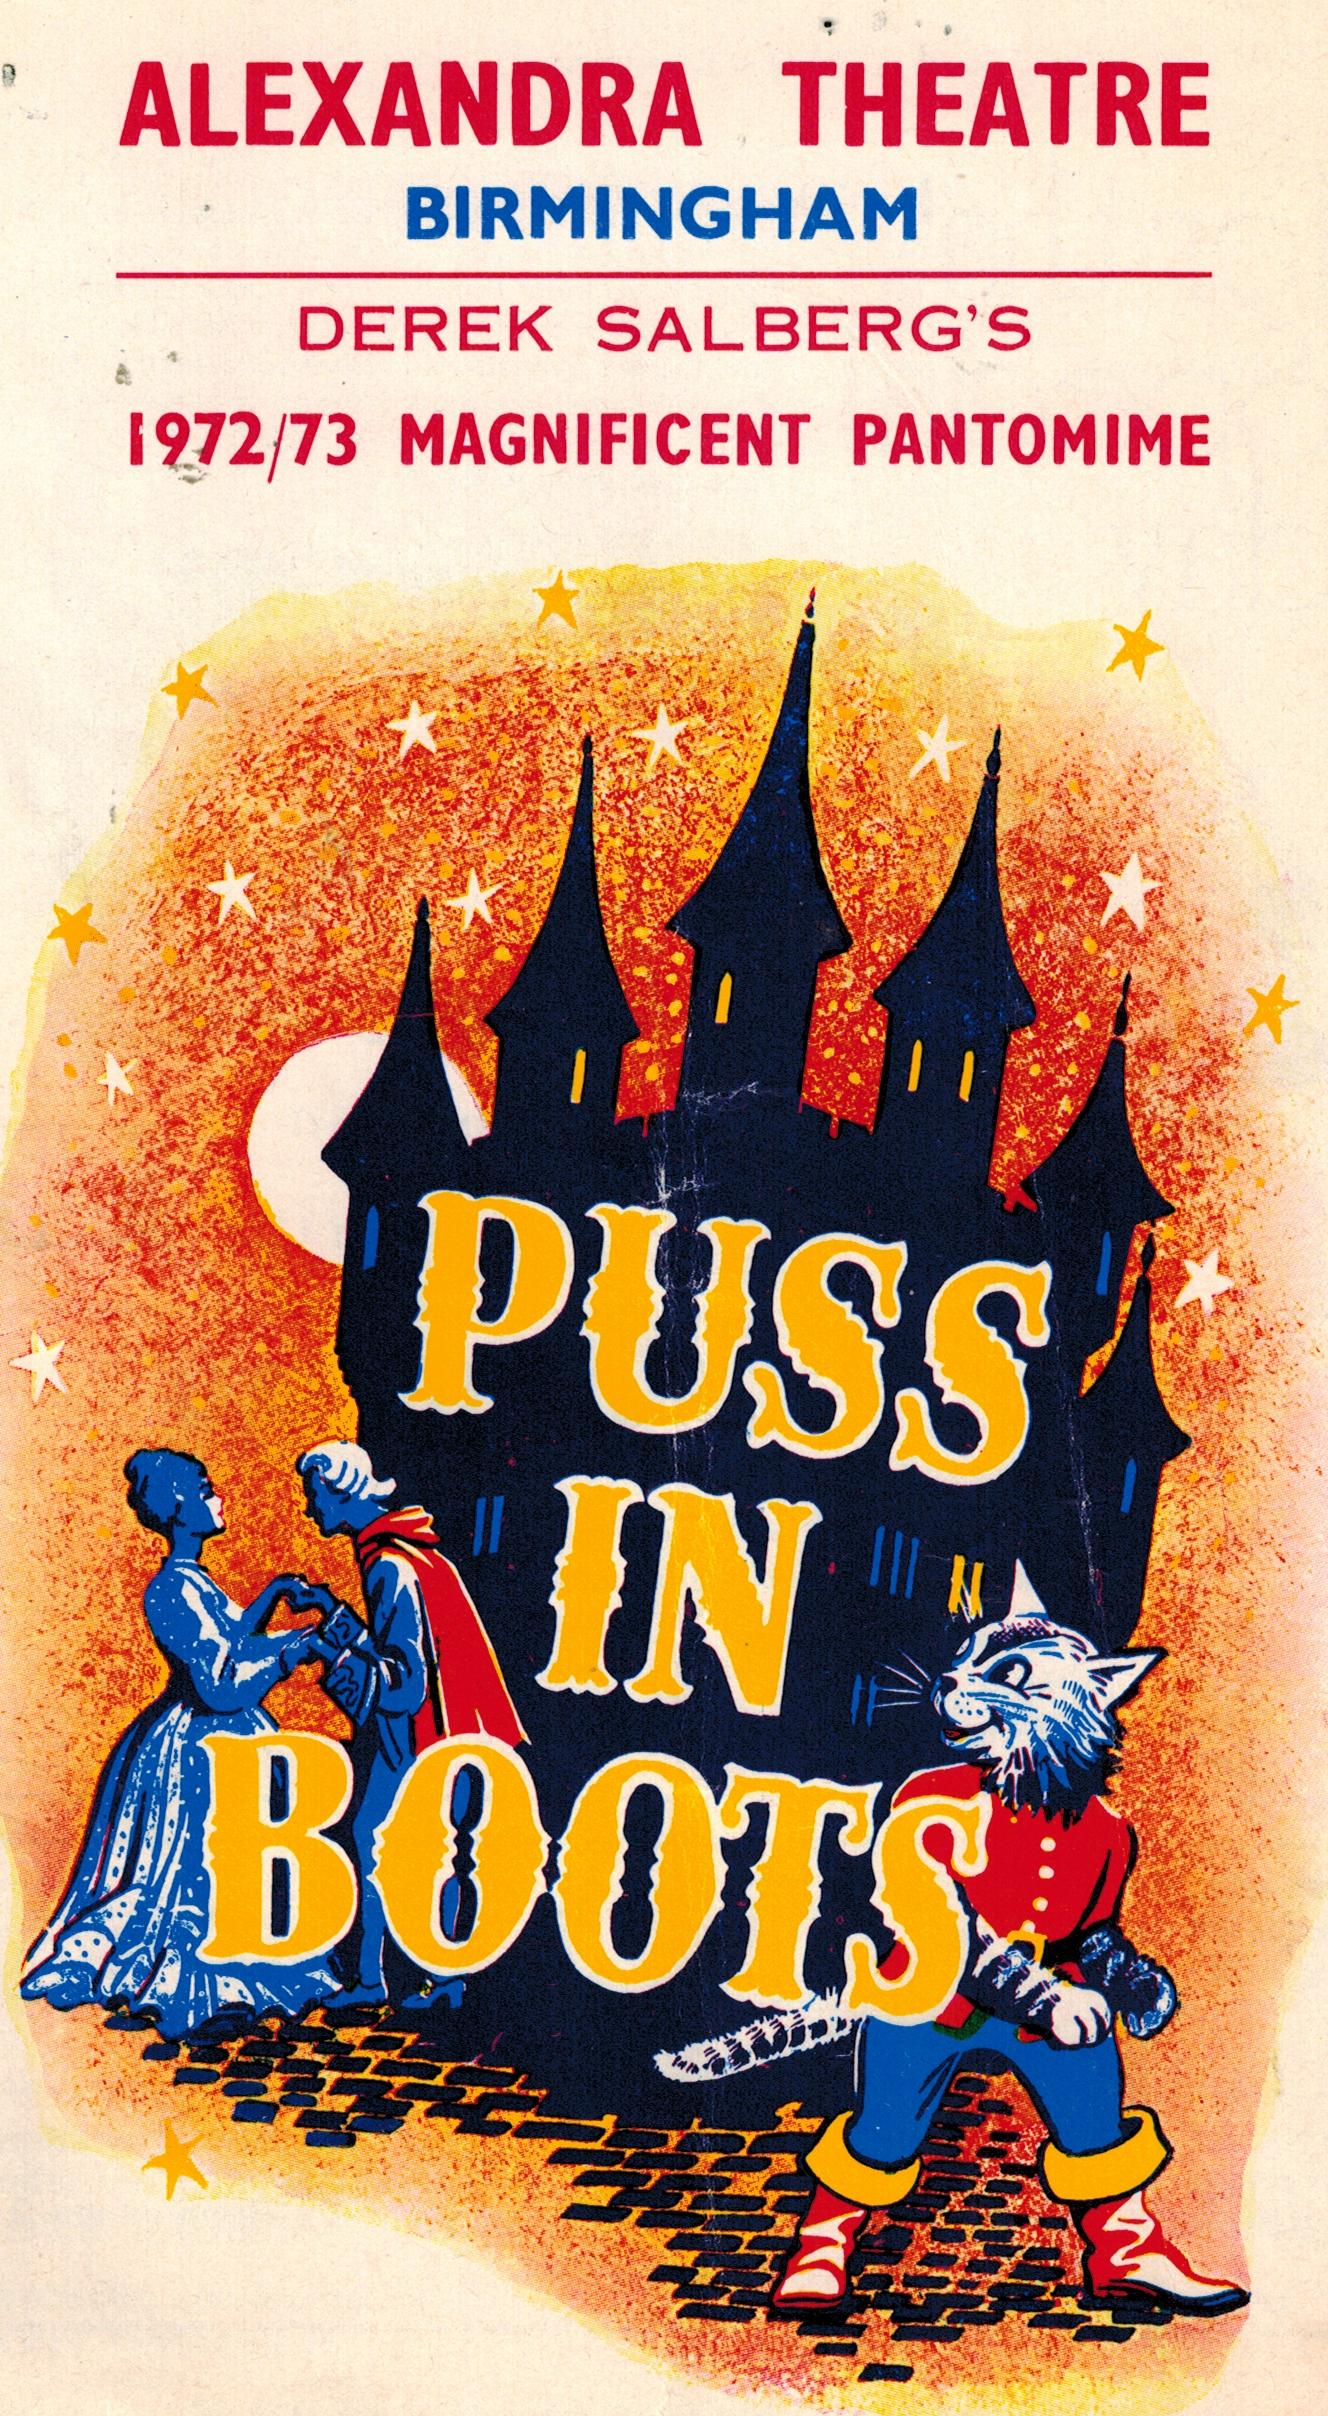 O105_Alexandra-Theatre_[Puss-in-Boots]-1972-73